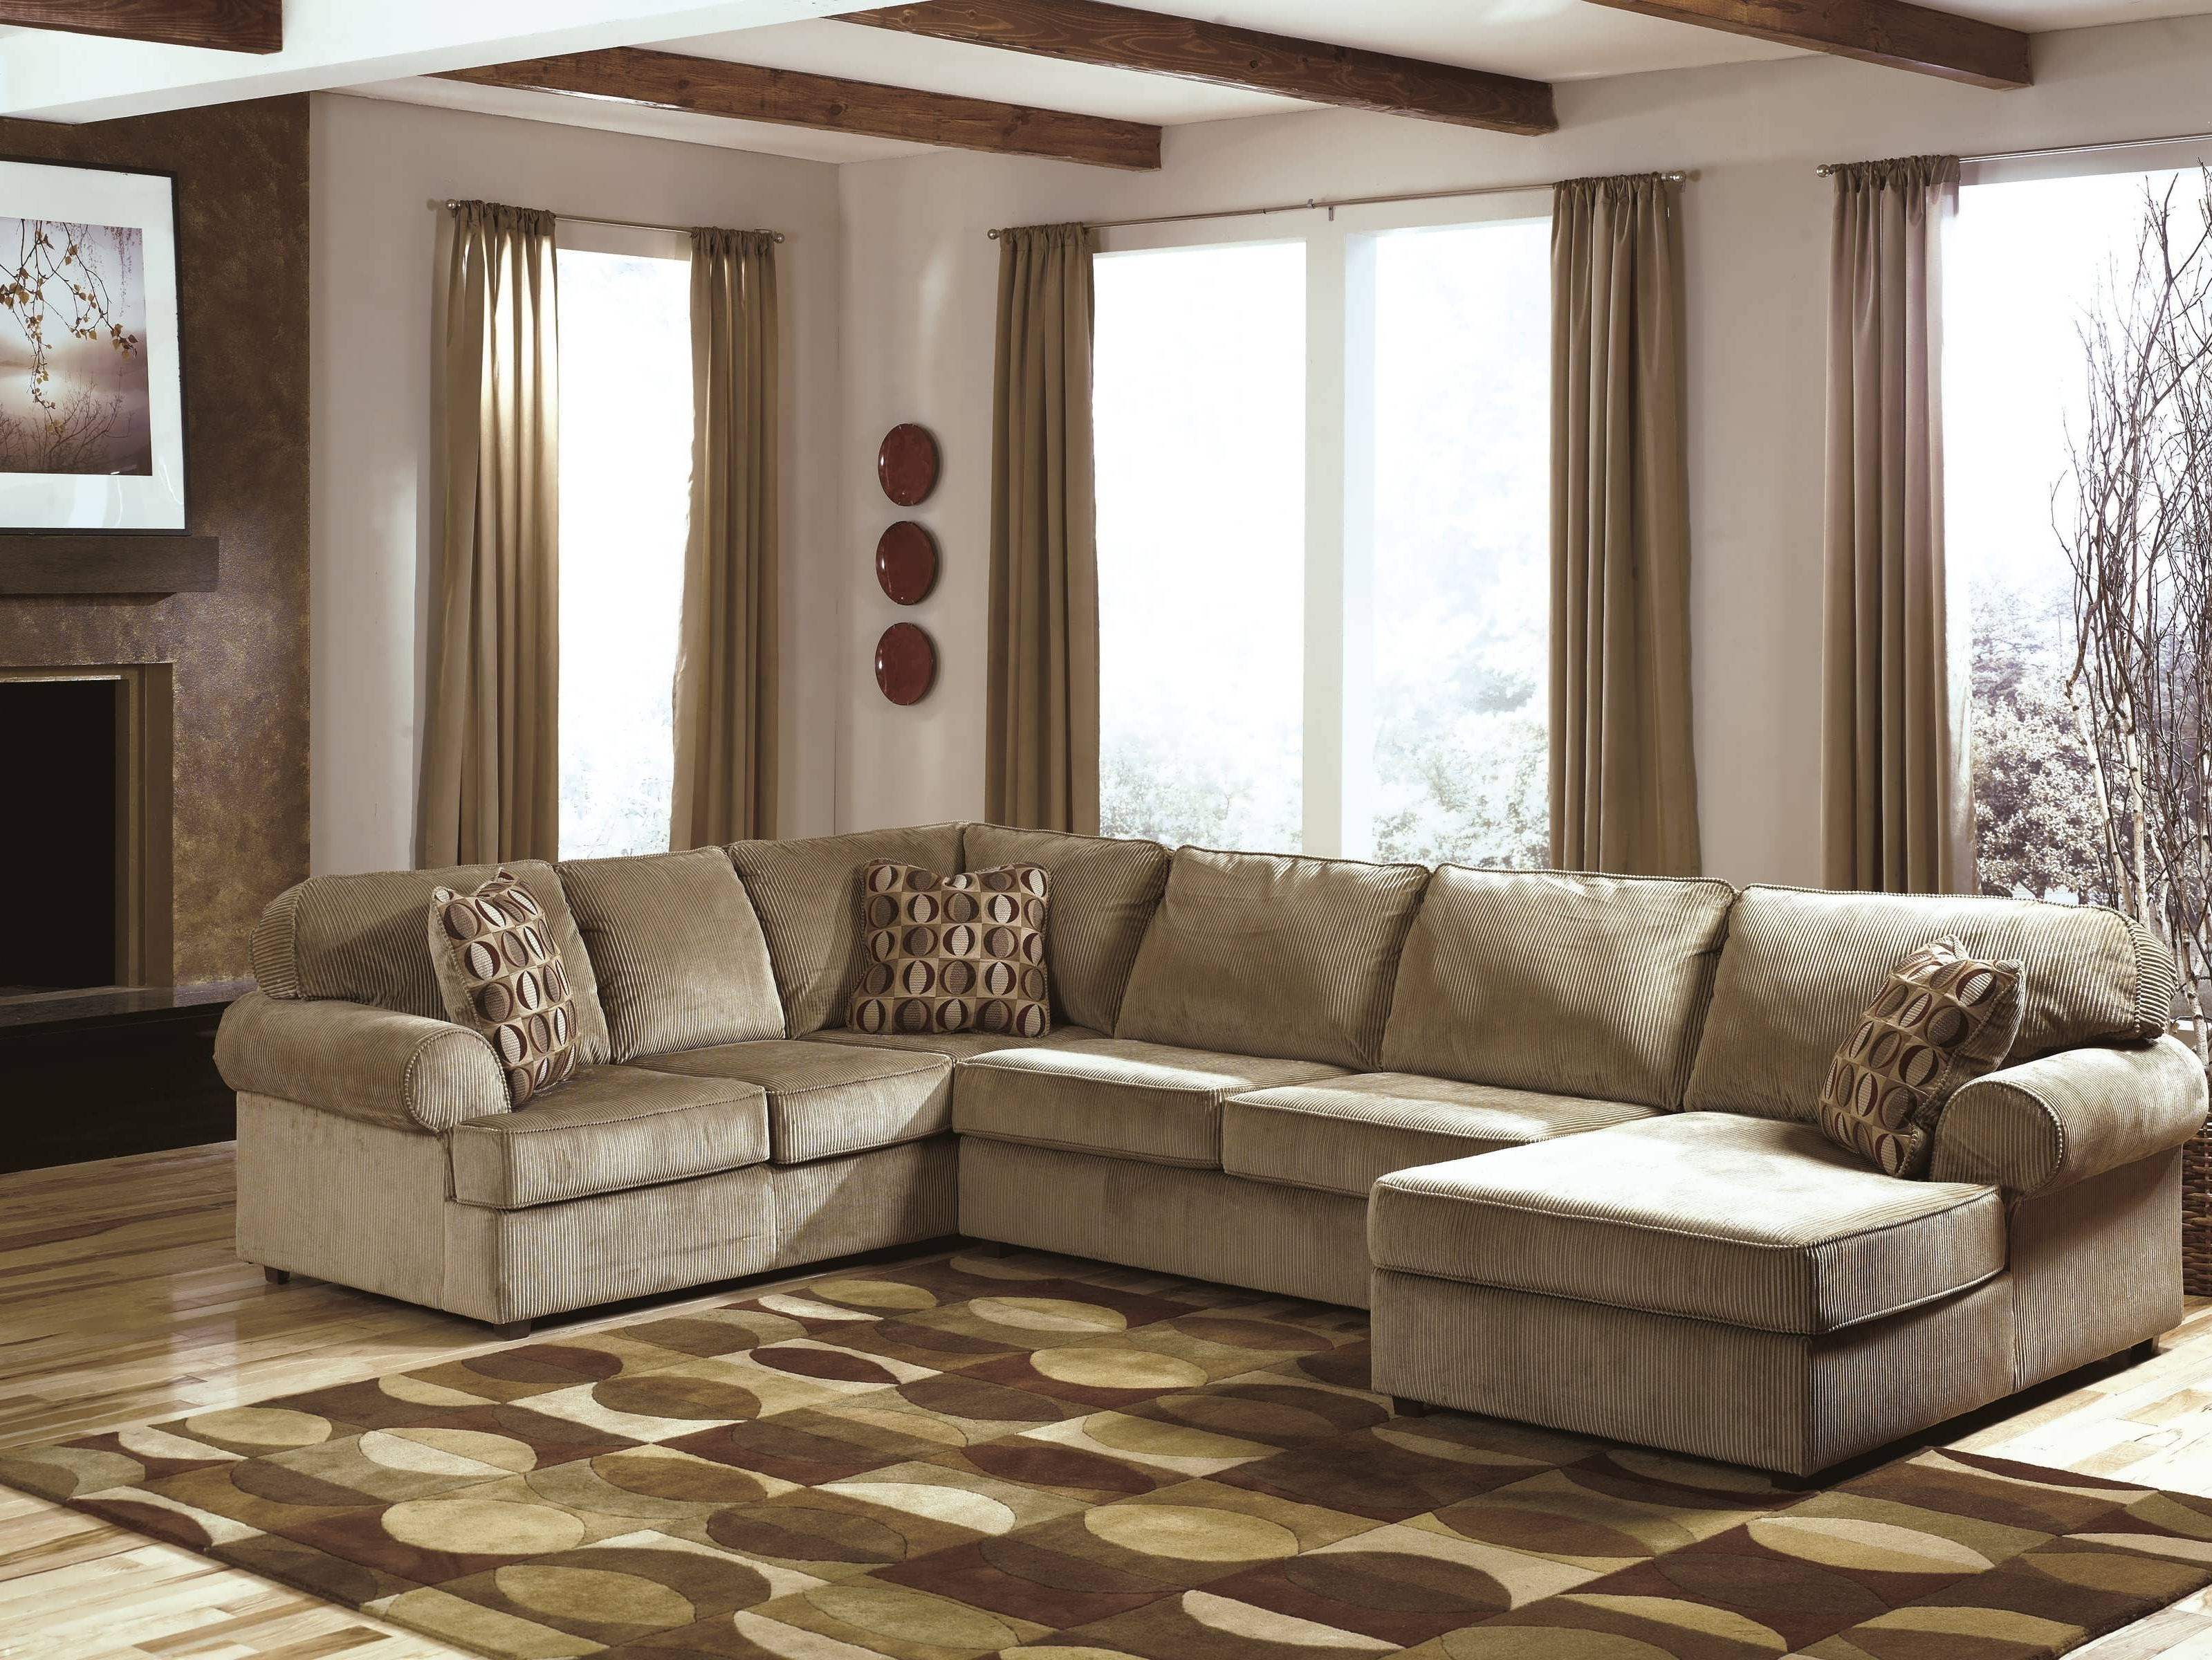 Double Chaise Sectionals Intended For 2018 Sofa : Modular Sectional Sofa Reclining Sectional Couch Sectionals (View 5 of 15)